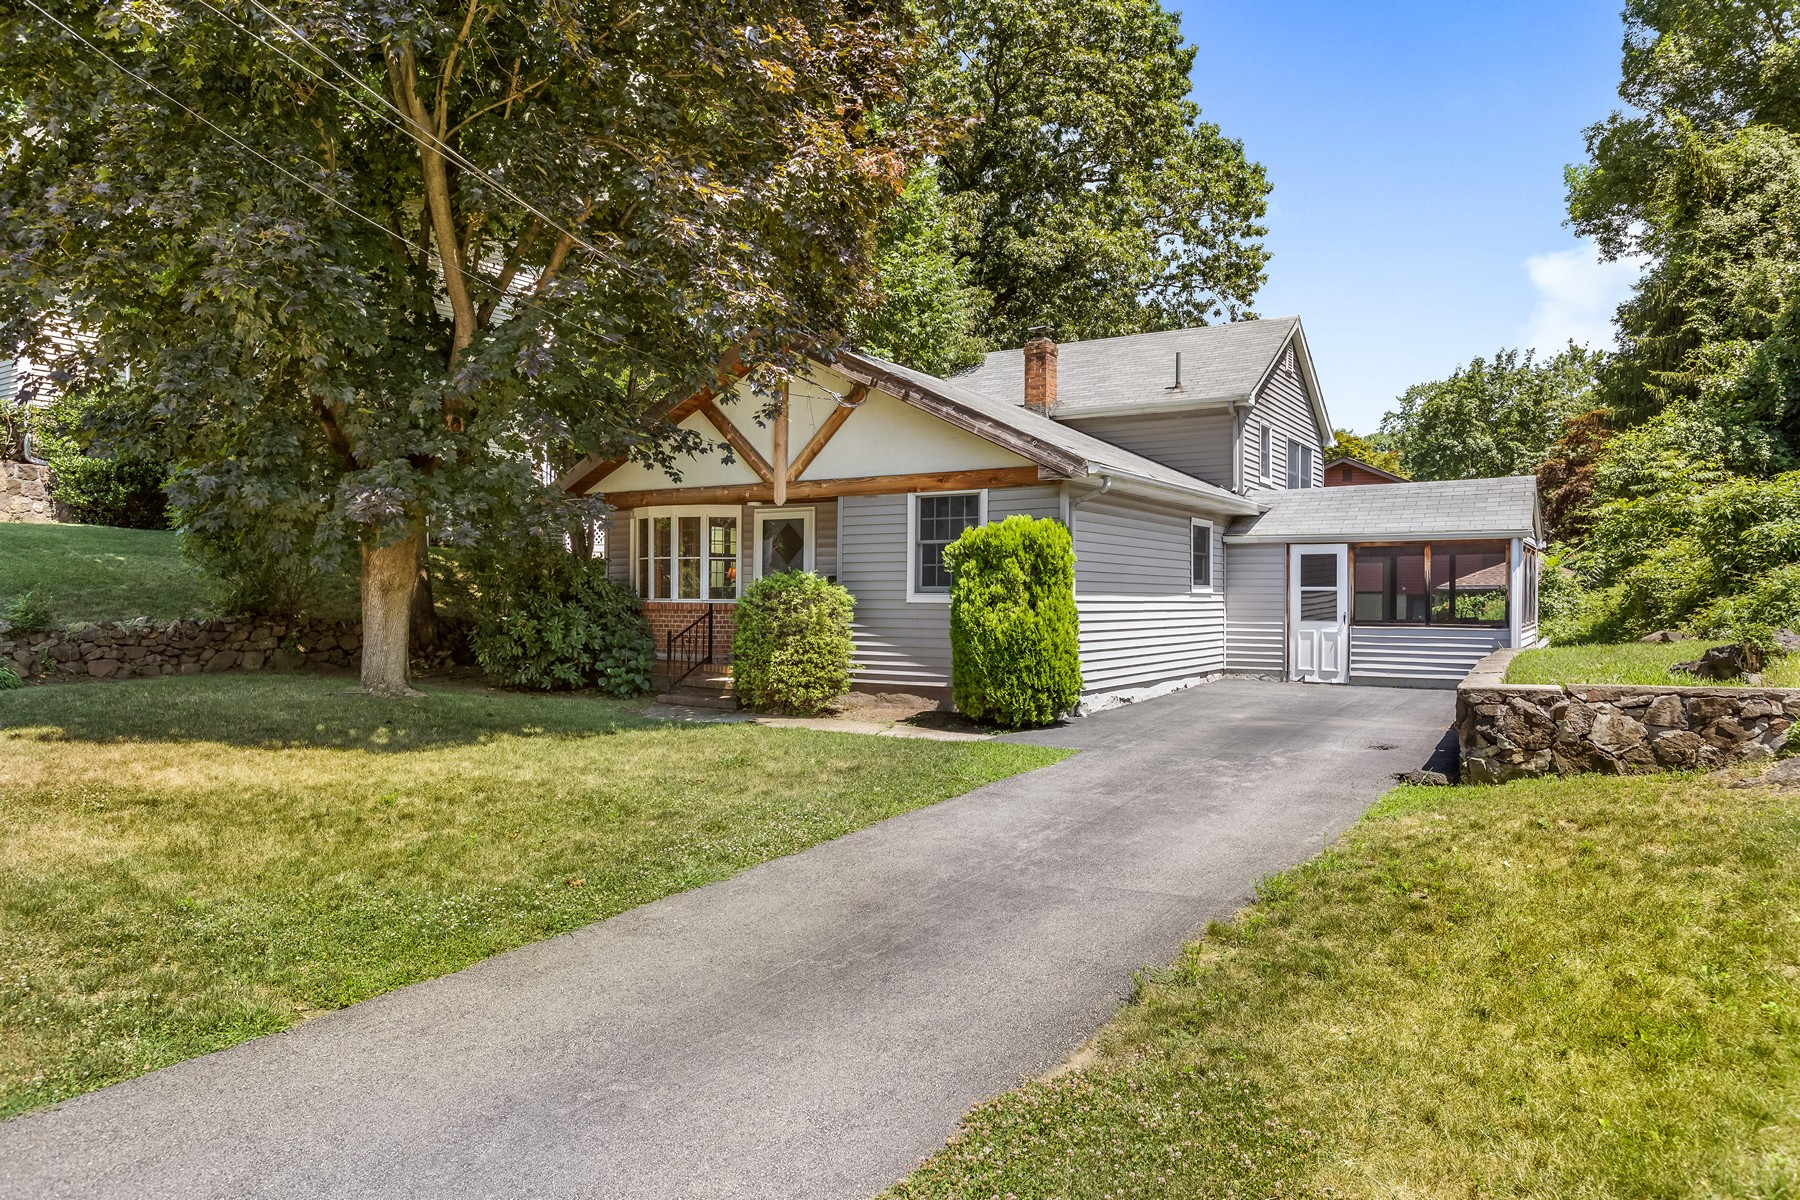 Single Family Homes for Active at Charming in the Country! 185 3rd Street Buchanan, New York 10511 United States